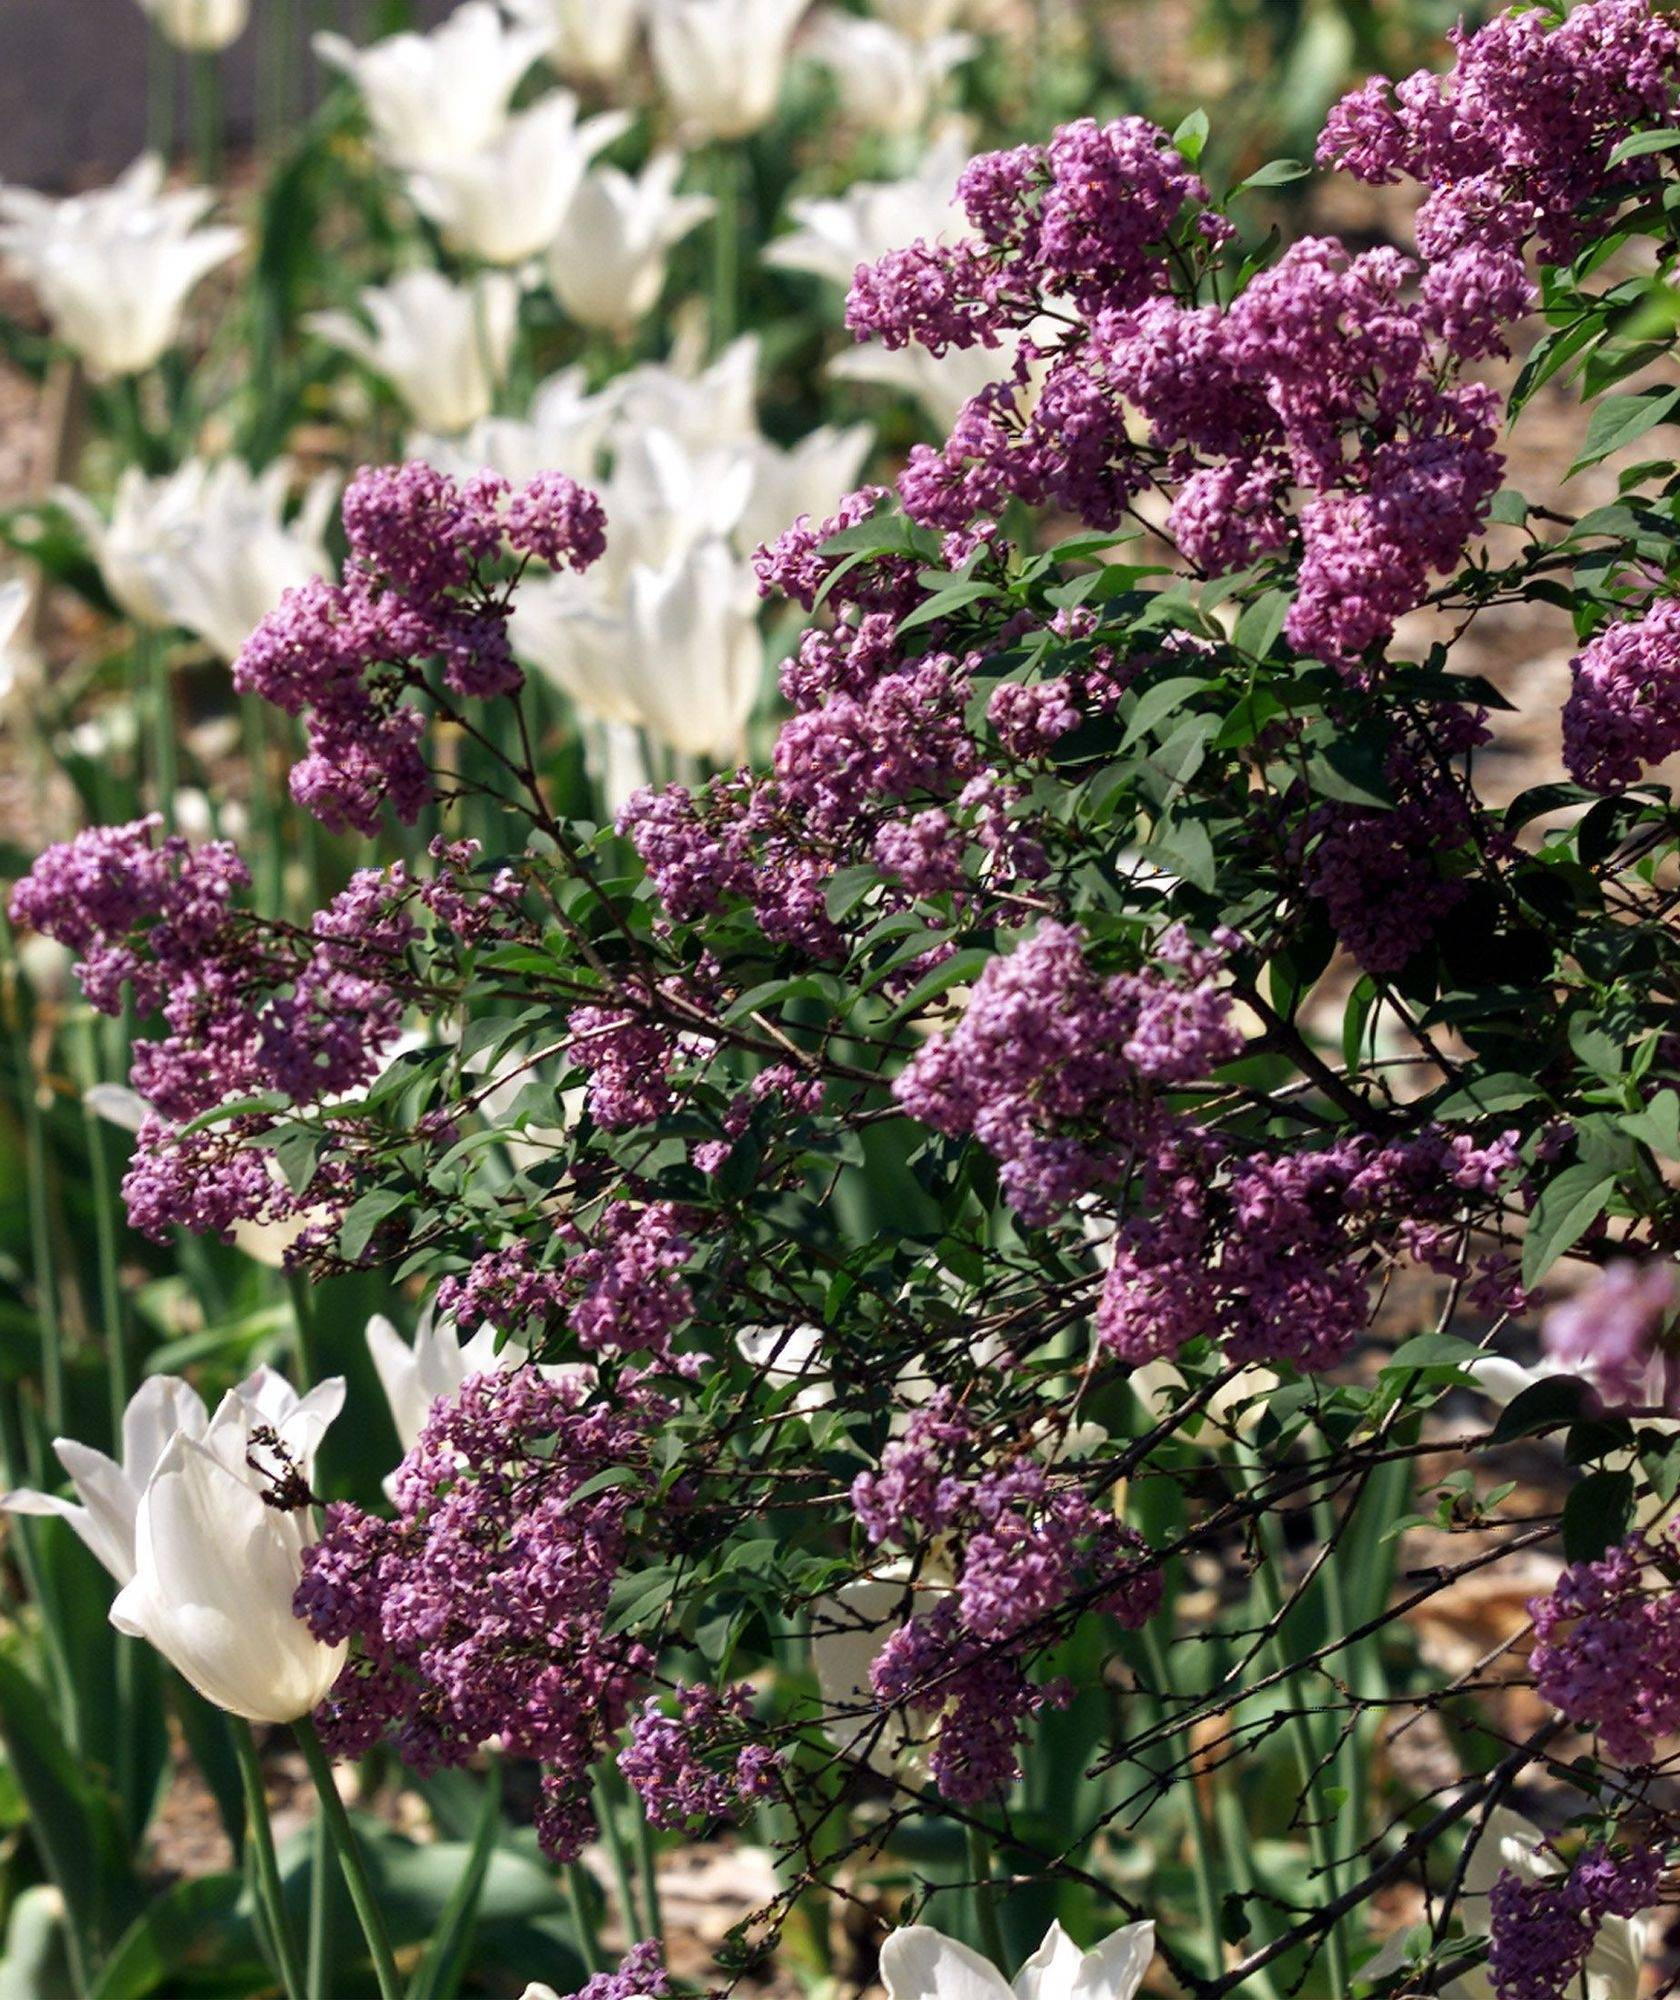 Lilac Time opens this weekend in Lombard.